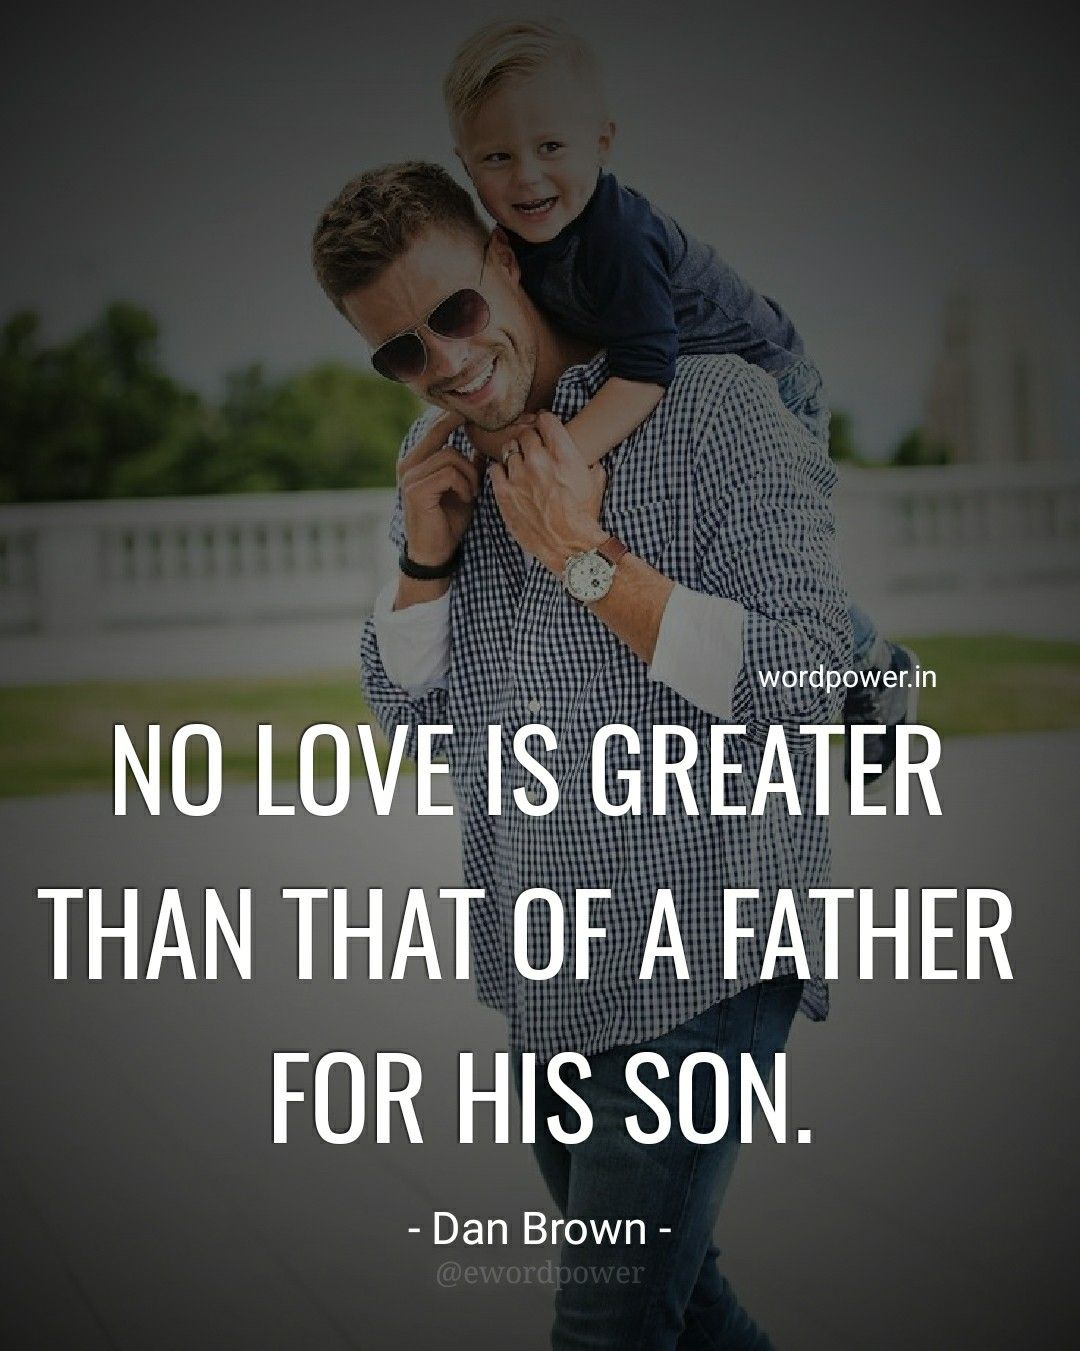 No love is greater than that of a father for his son